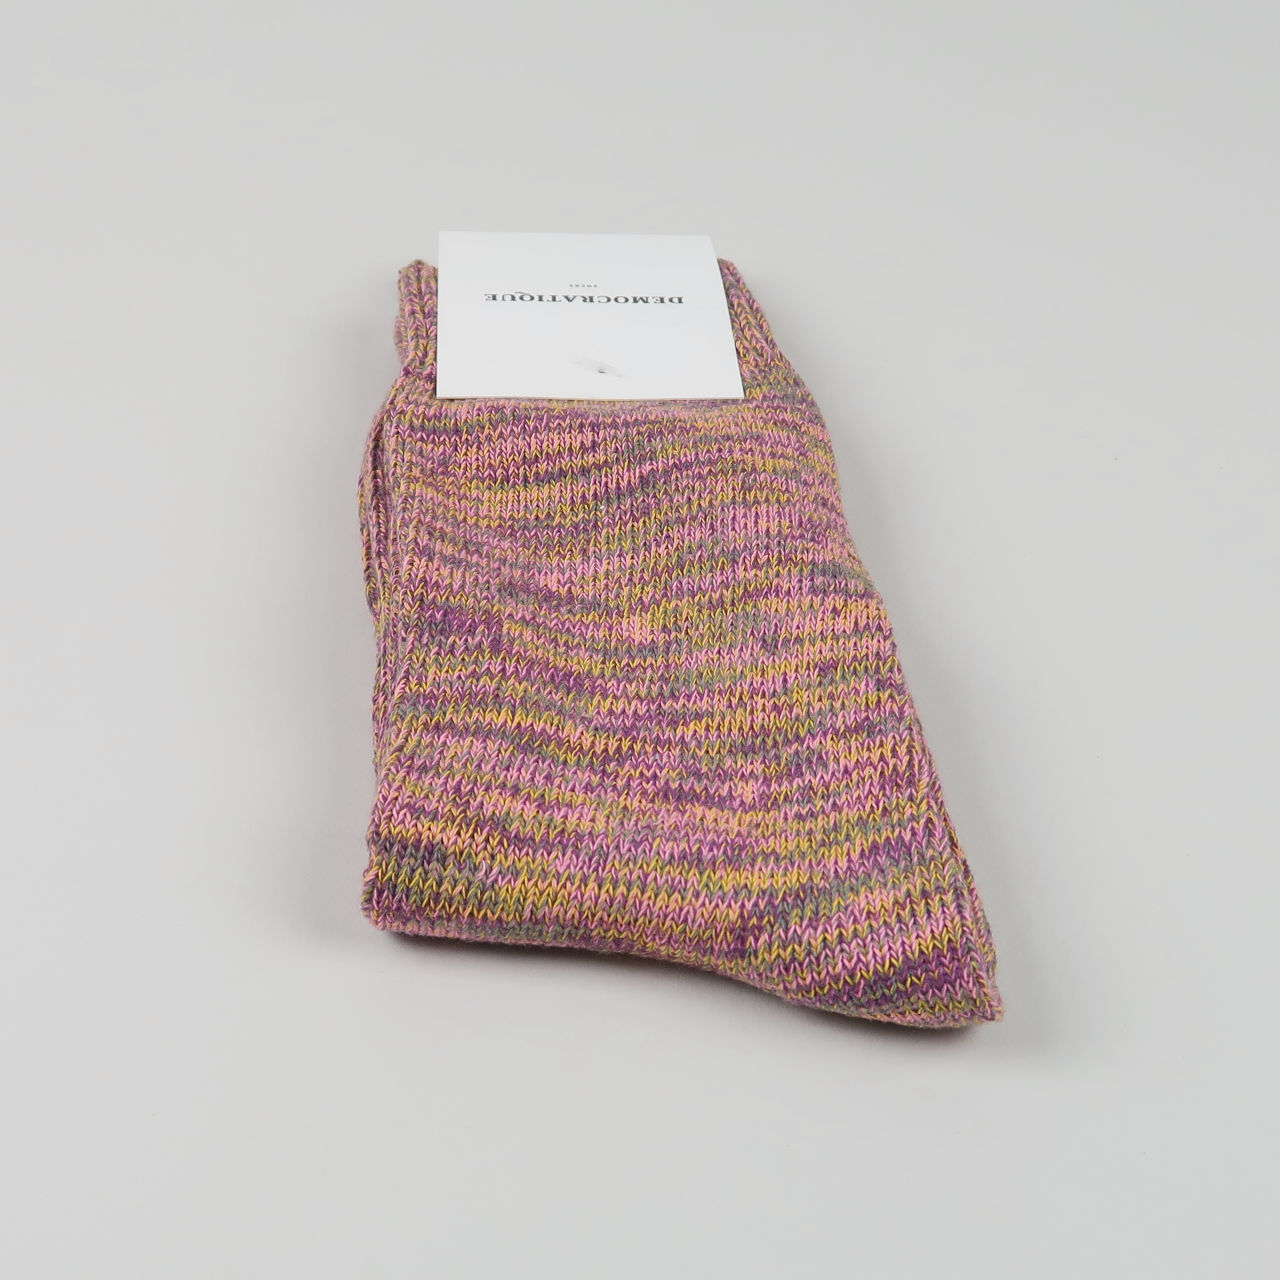 Men's Socks - Relax Chunky Knit - Violet/Pink Fleur/Army/Hot Curry